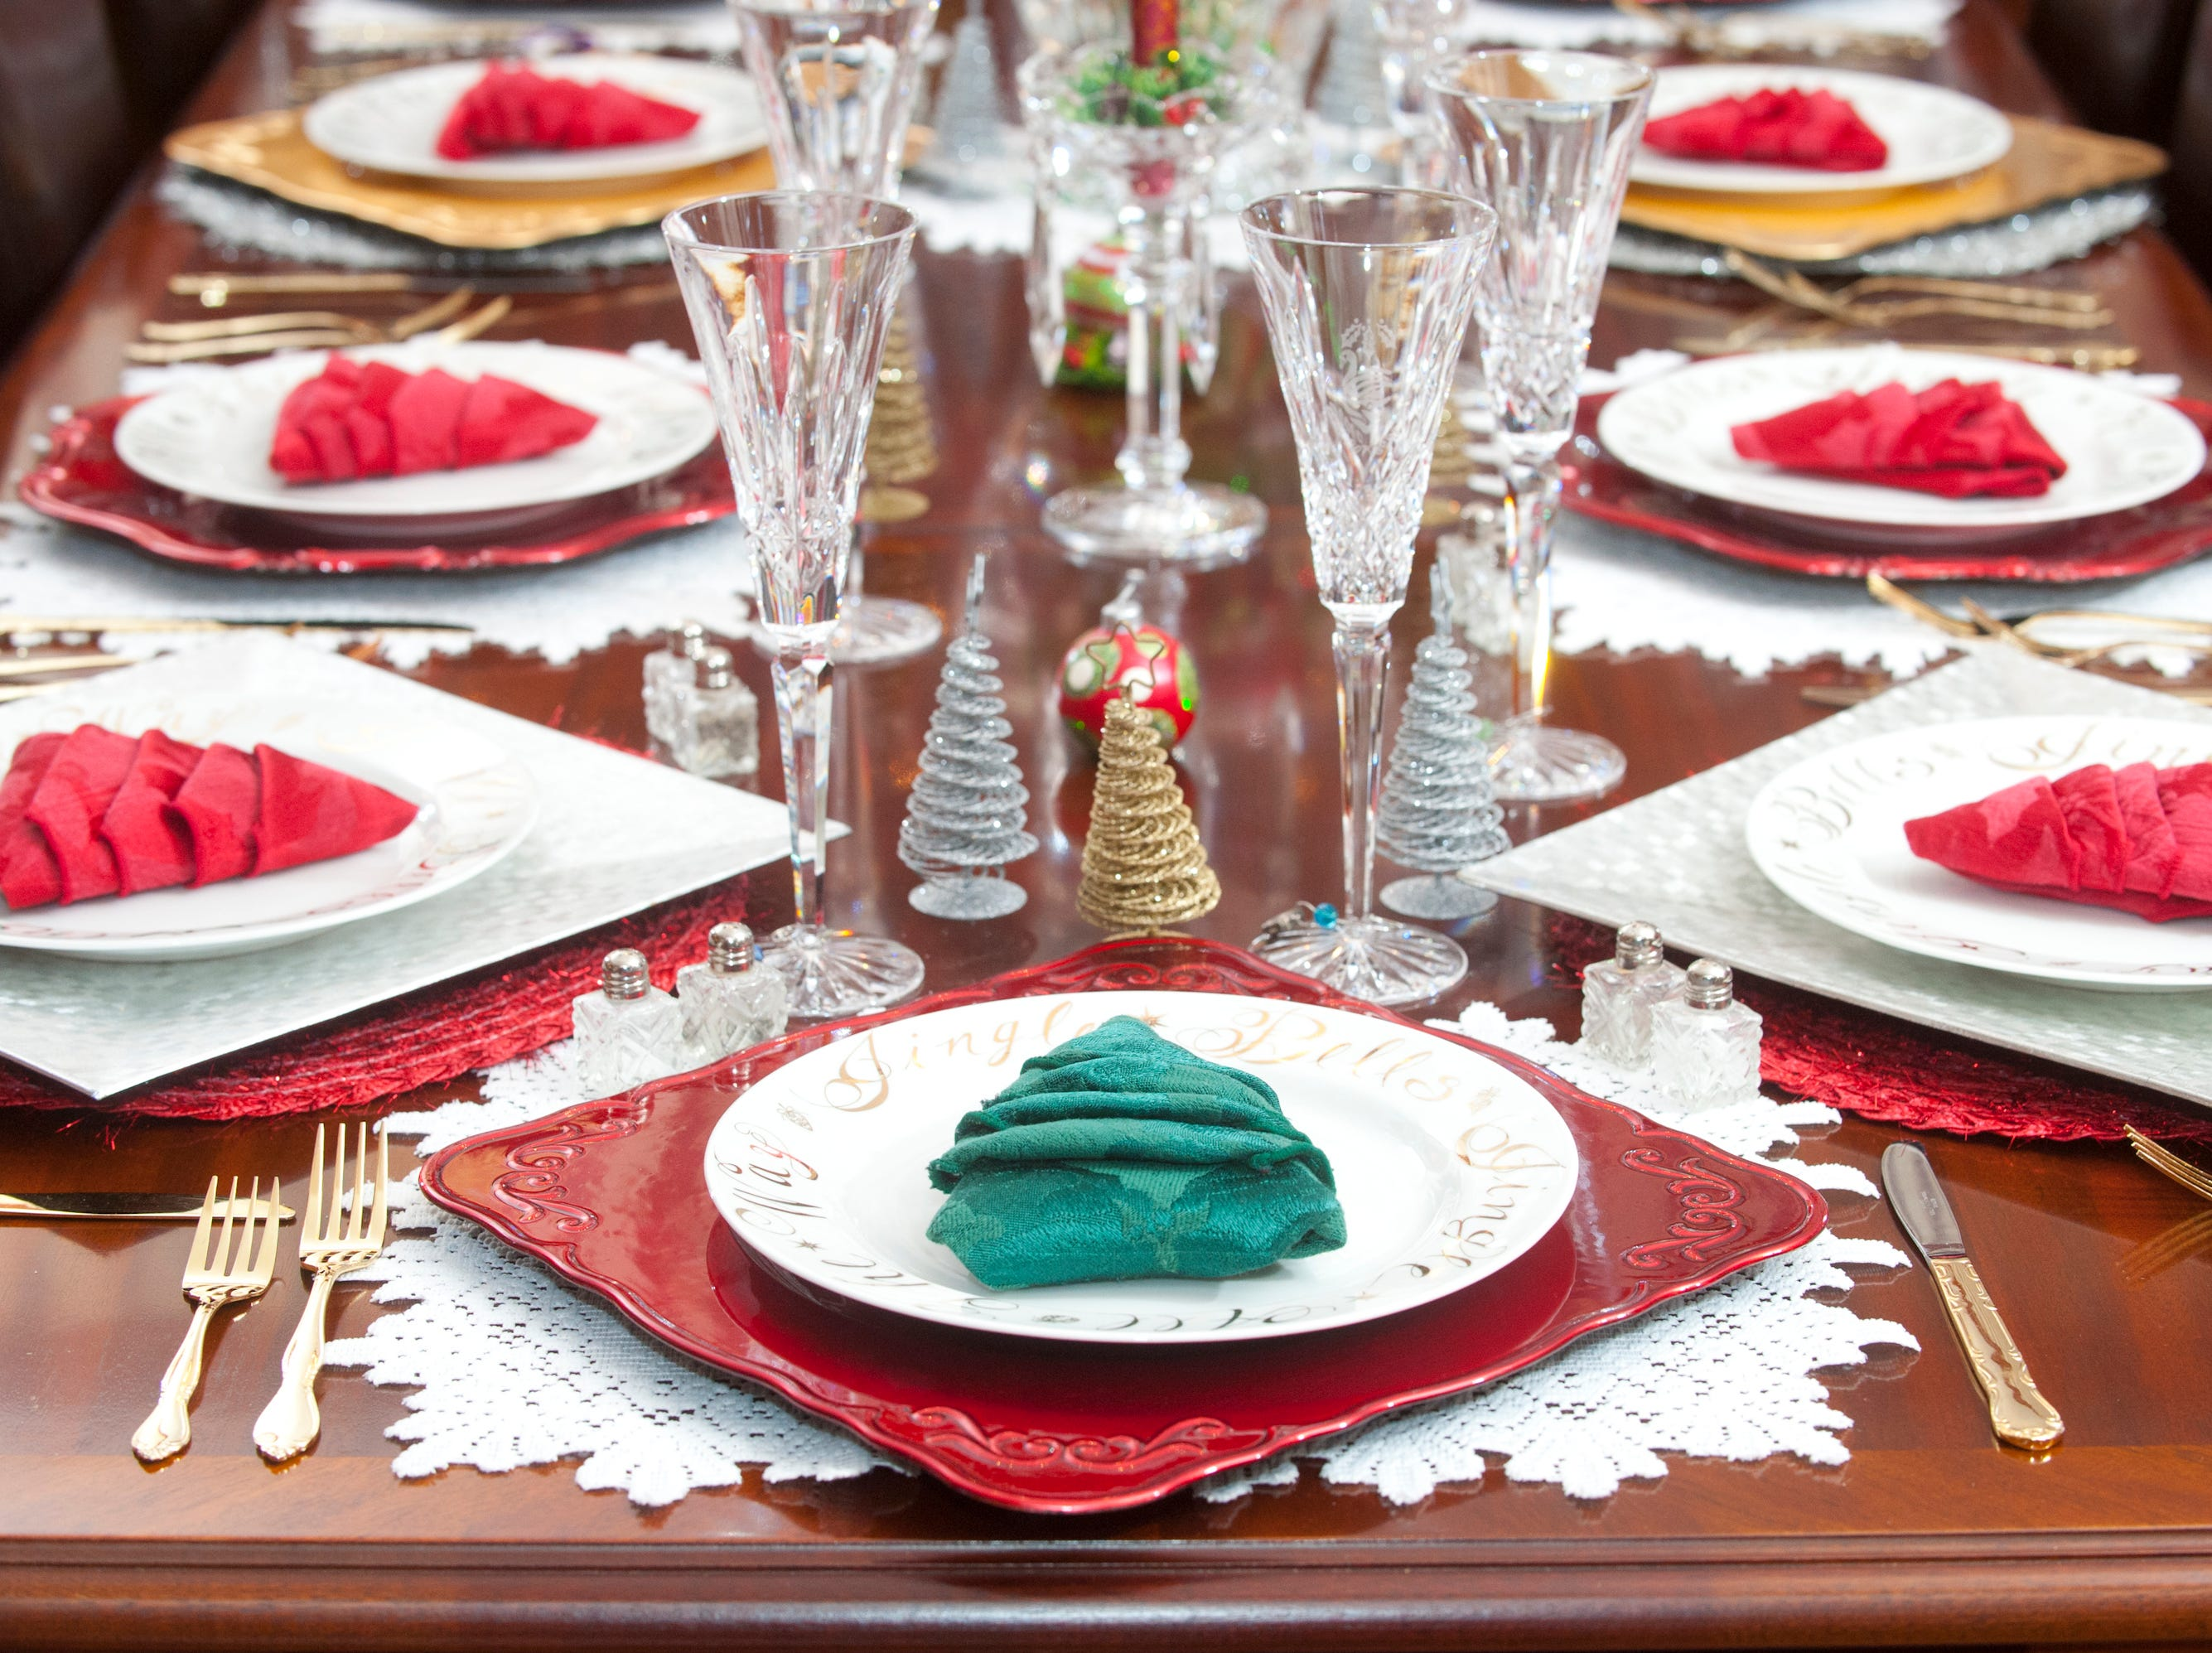 This twelve-piece dining table setting features napkins folded like Christmas trees. 